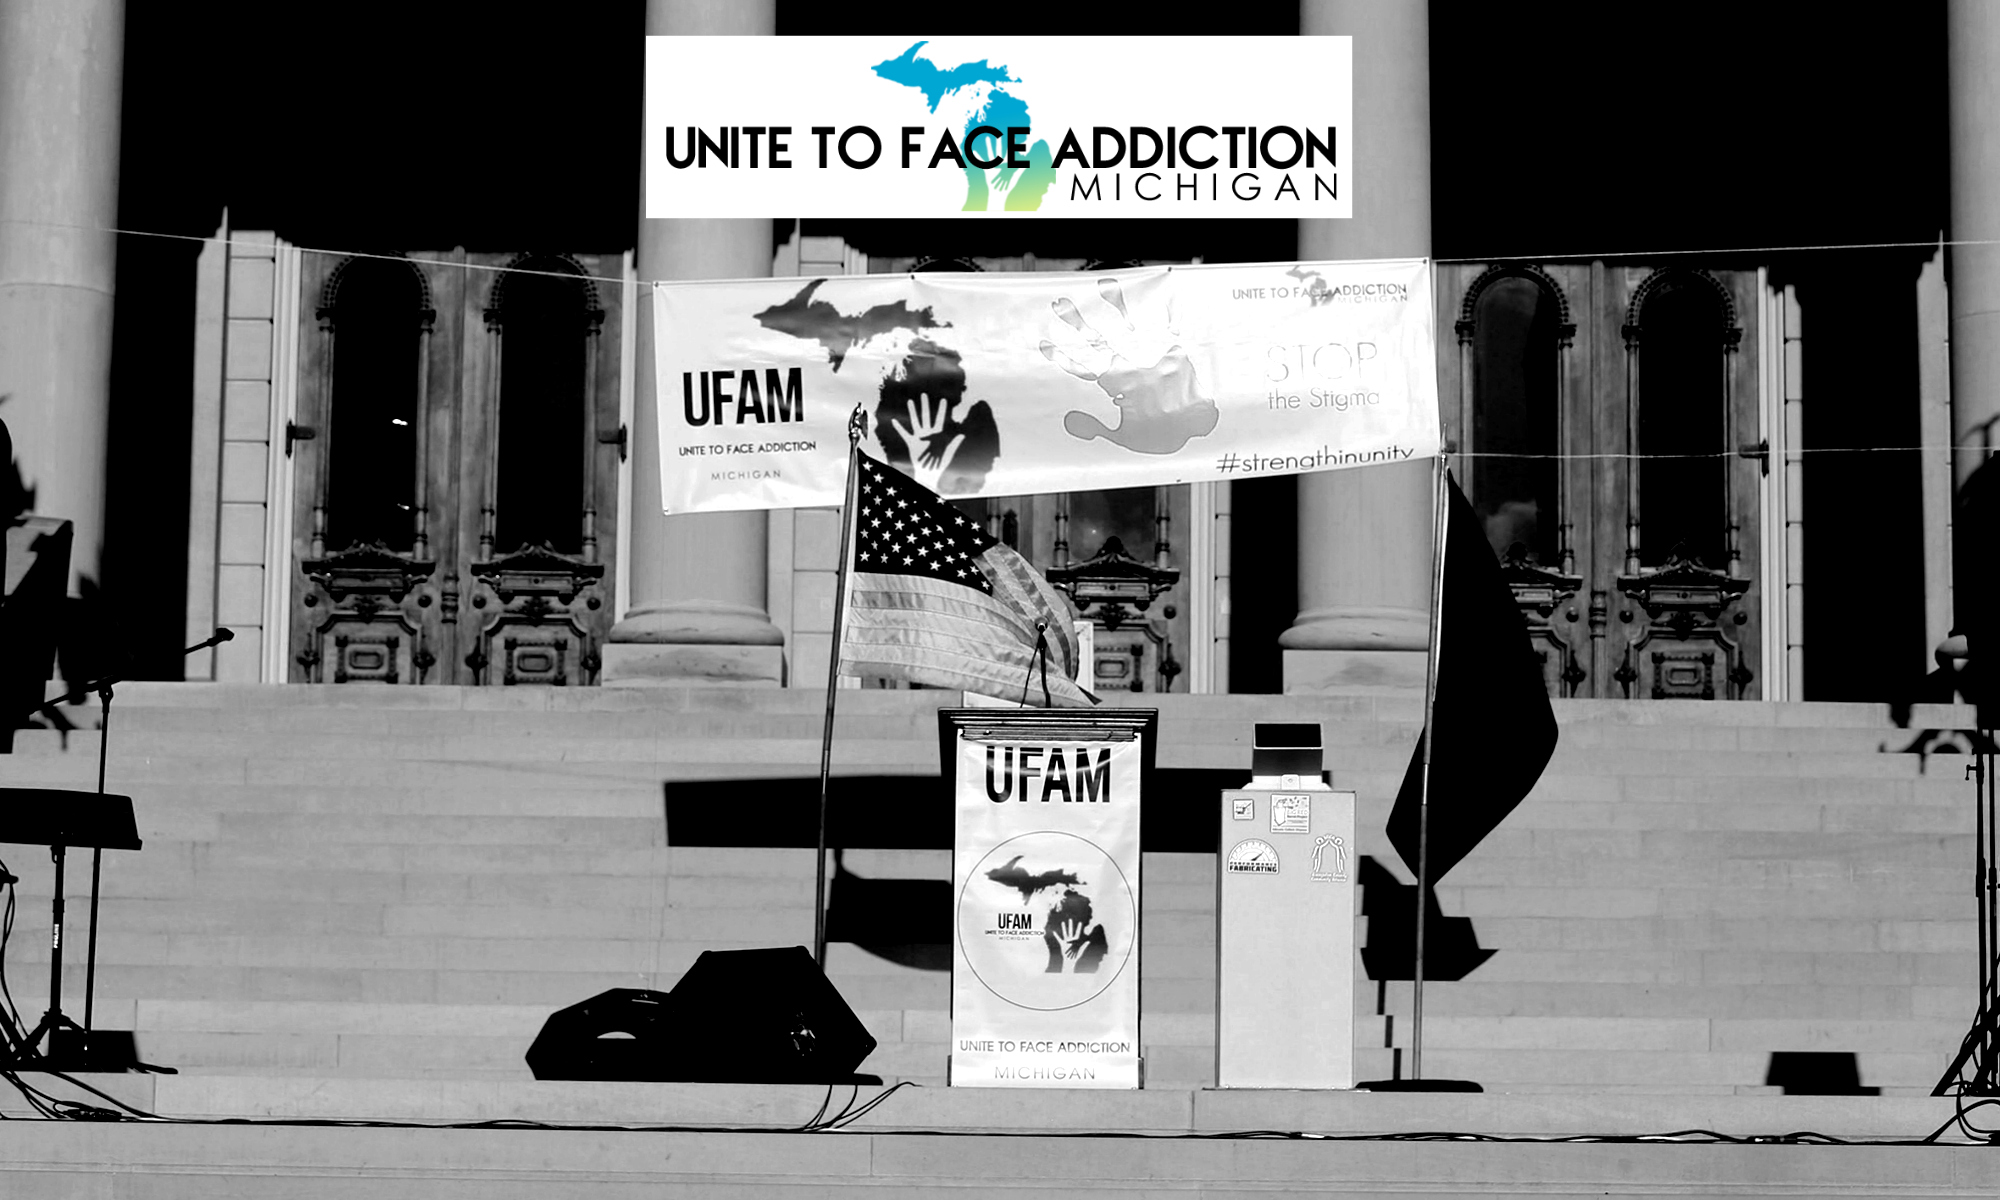 Unite to Face Addiction Michigan